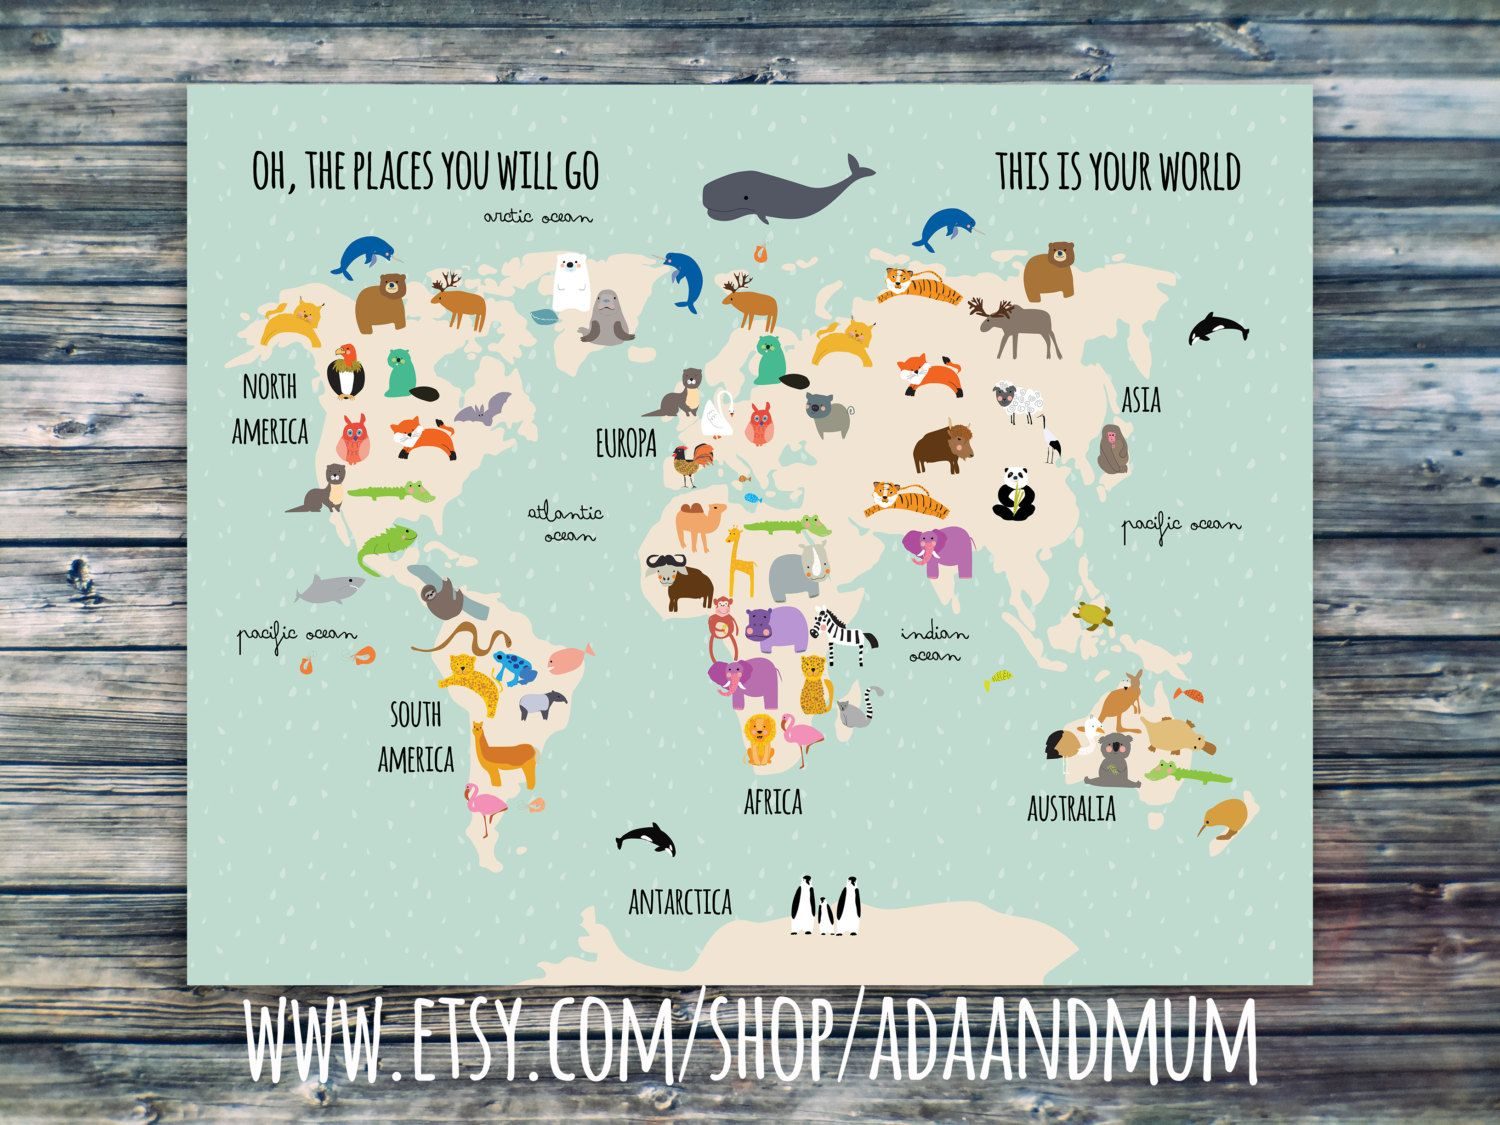 Animal planet world map for kids continents oceans animals animal planet world map with animals for kids continents oceans and animals gumiabroncs Image collections